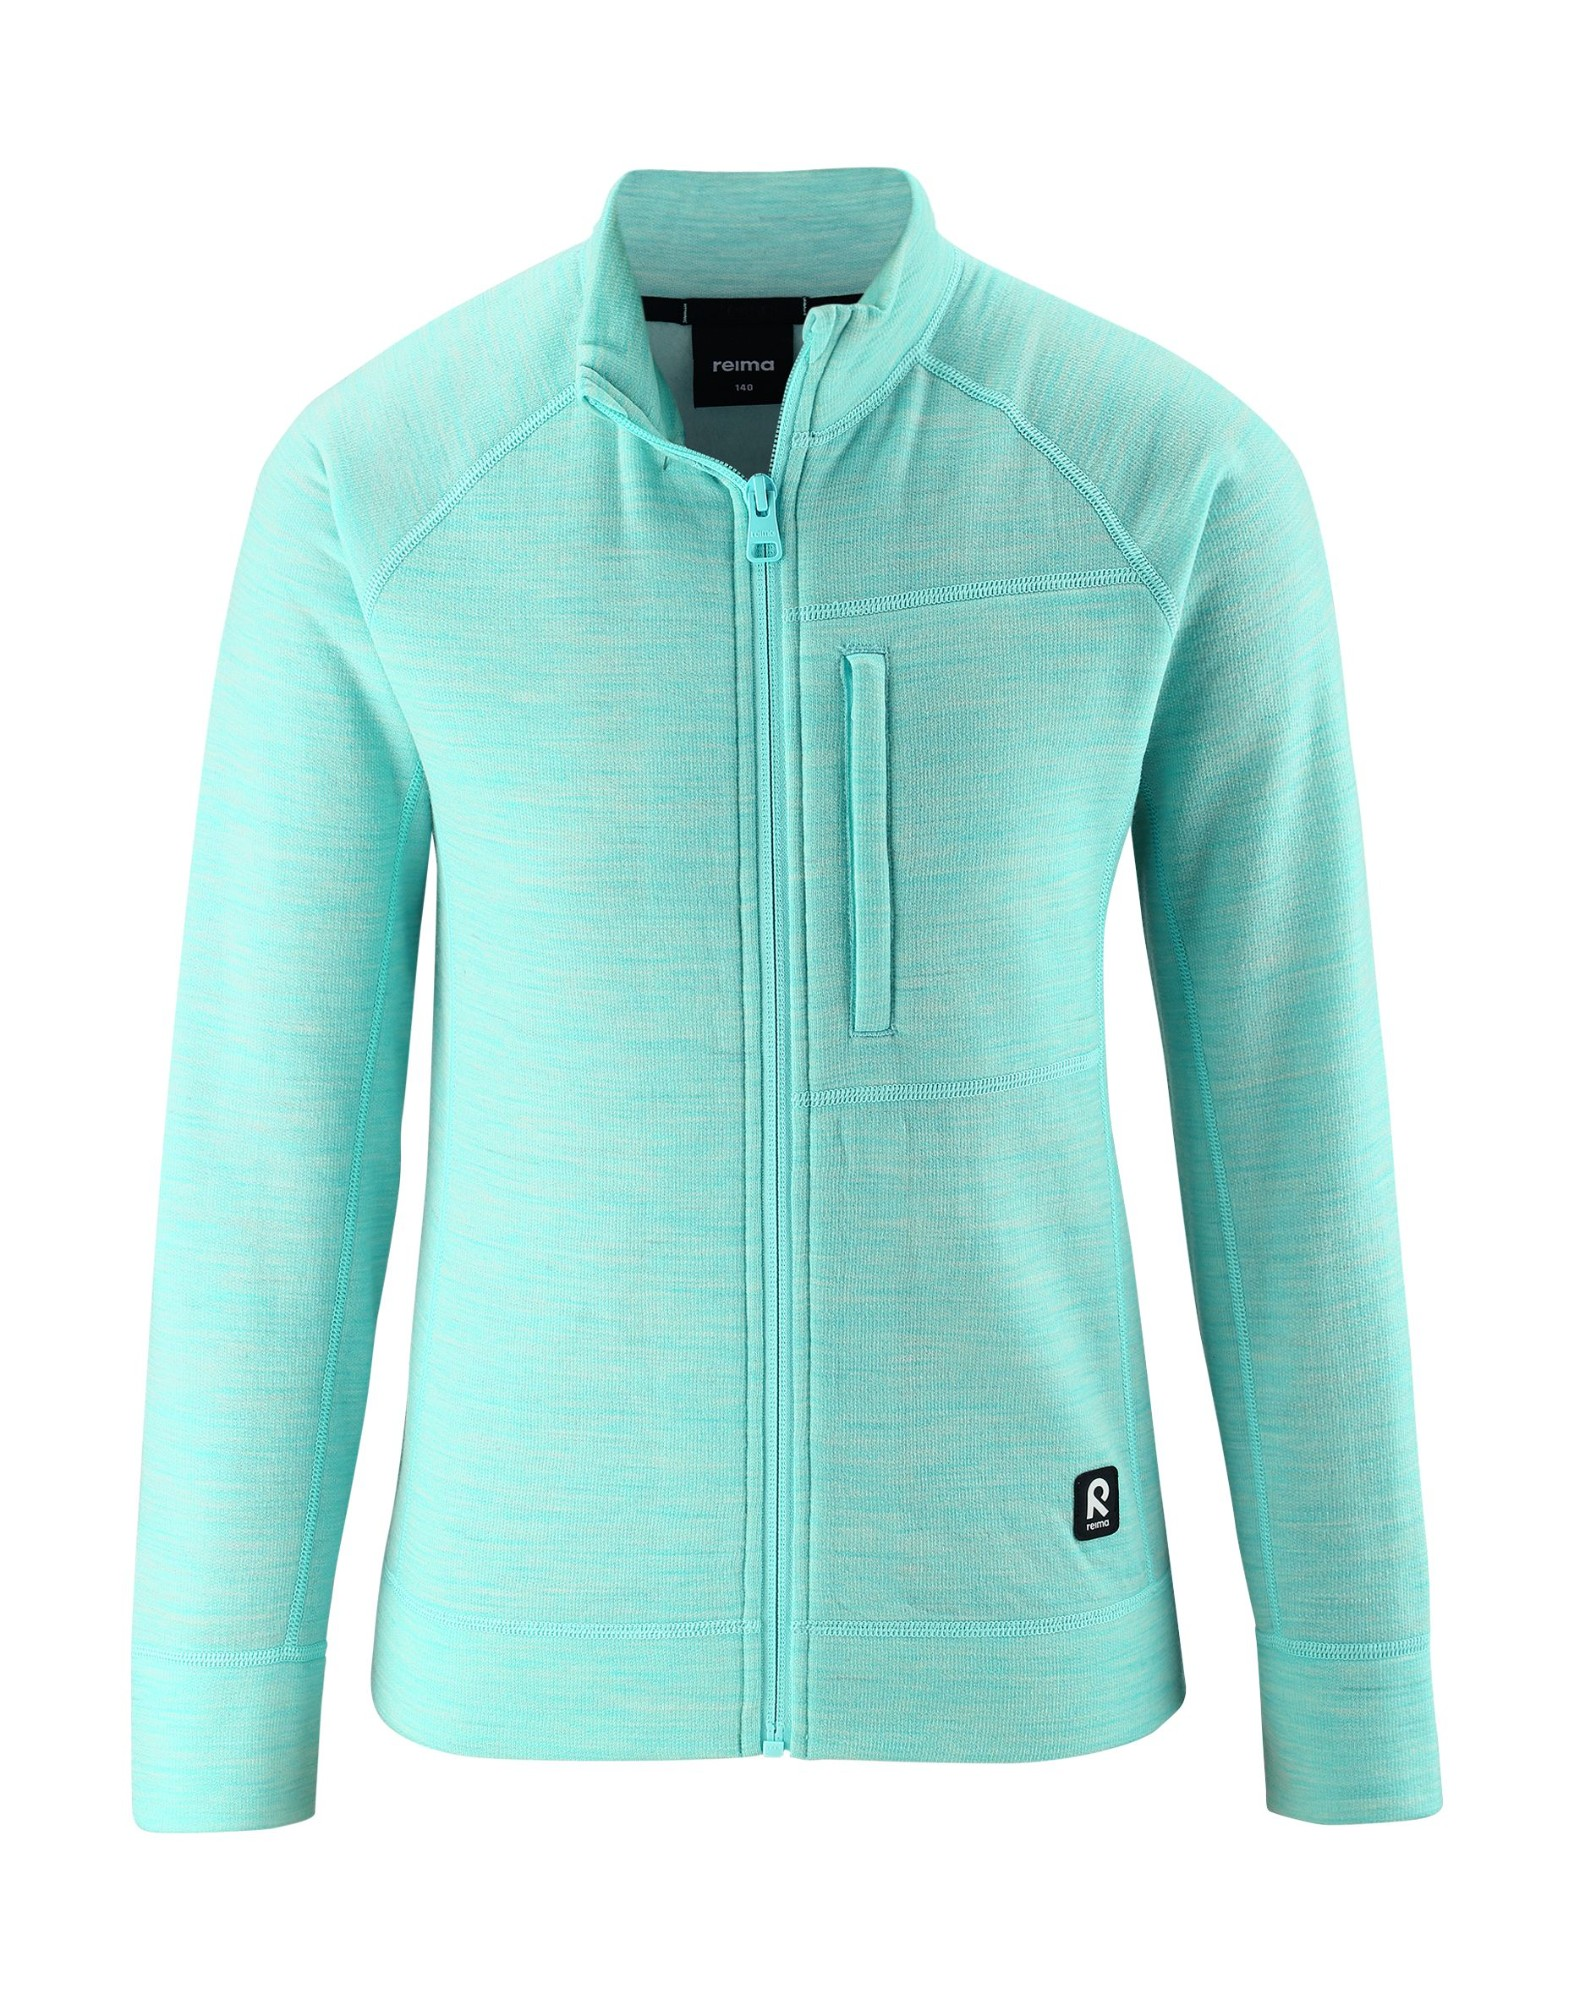 REIMA Mists Light Turquoise 146